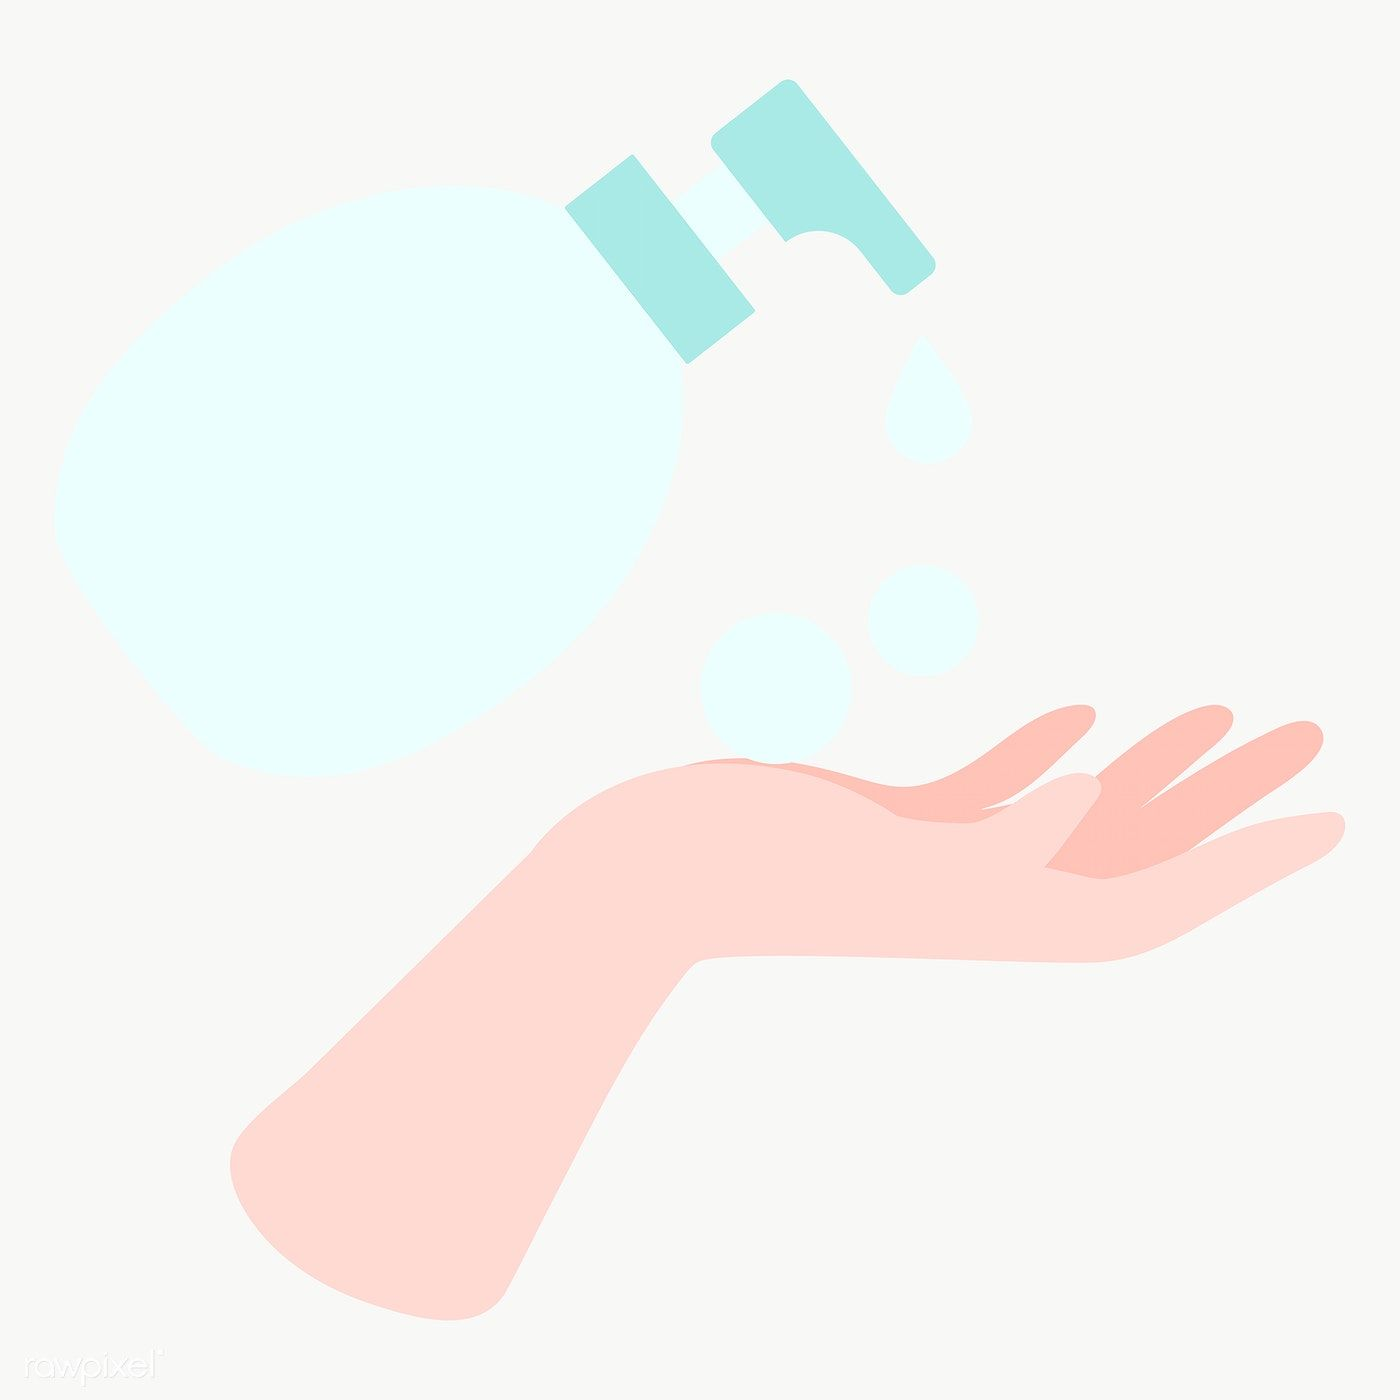 Wash Hands With Soap And Water Transparent Png Free Image By Rawpixel Com Nunny Medical Icon Soap Png